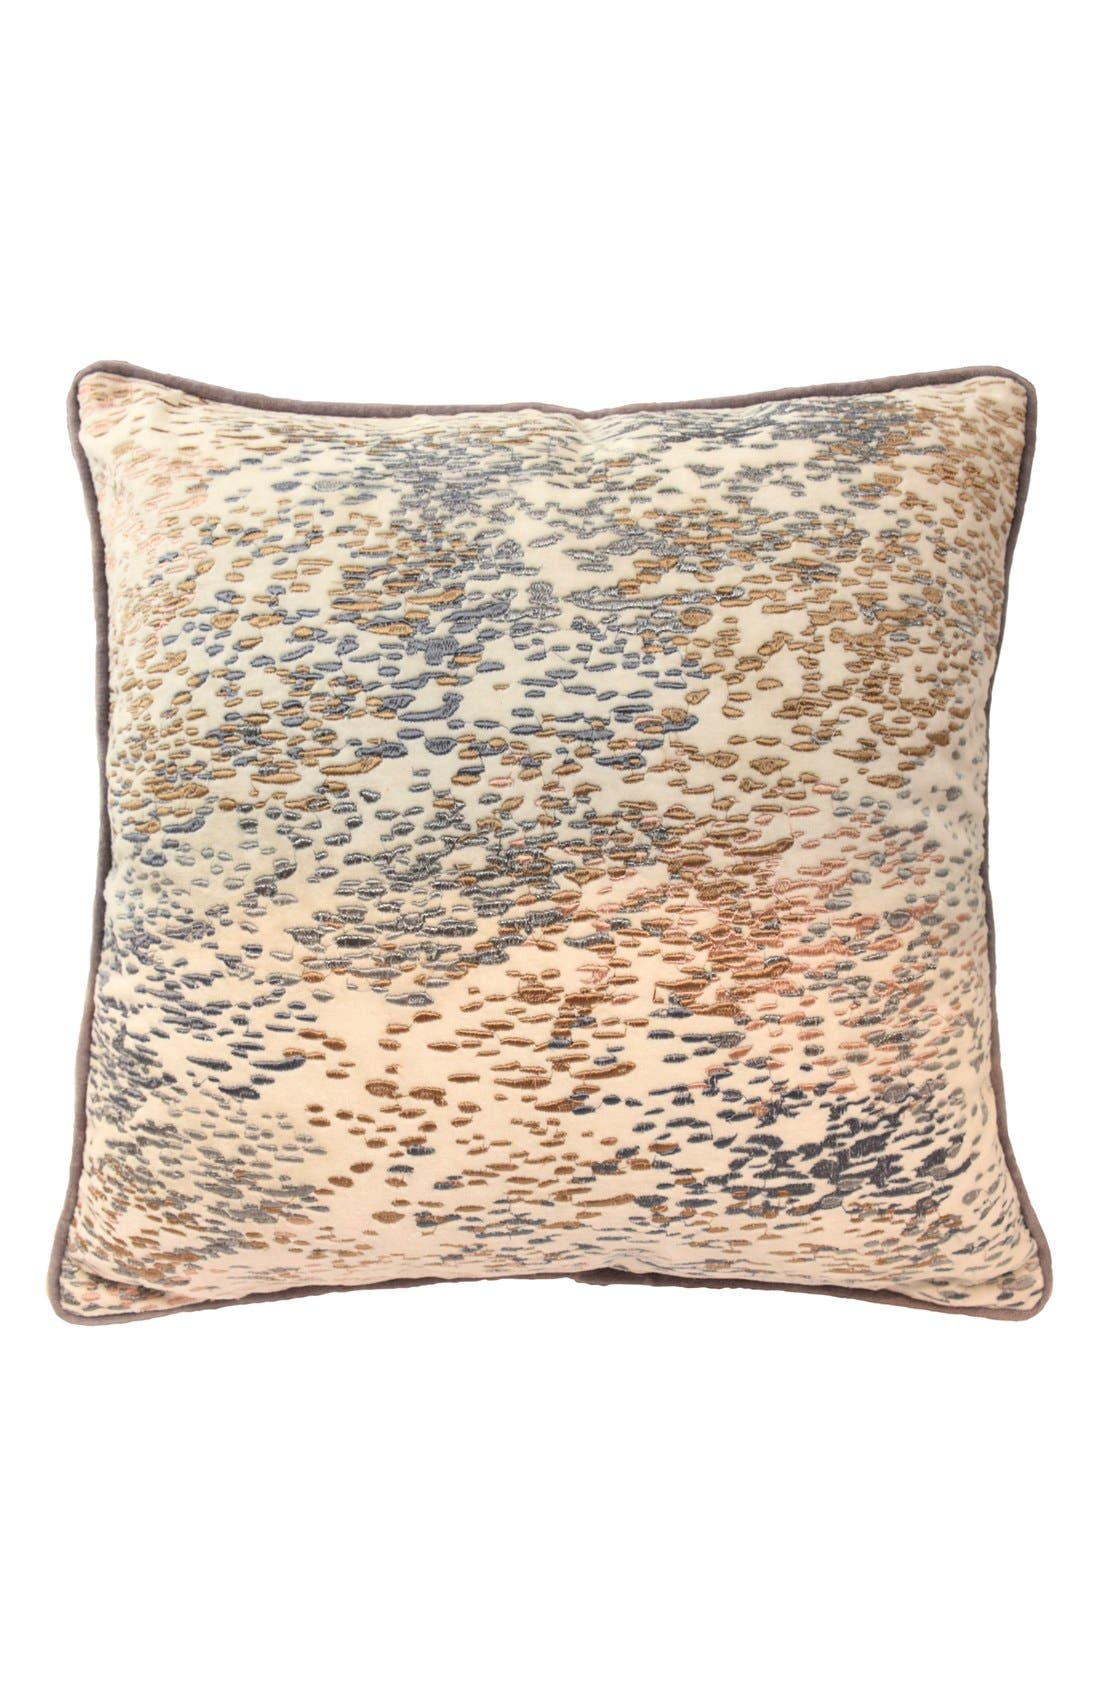 BLISSLIVING HOME 'Culturas' Pillow